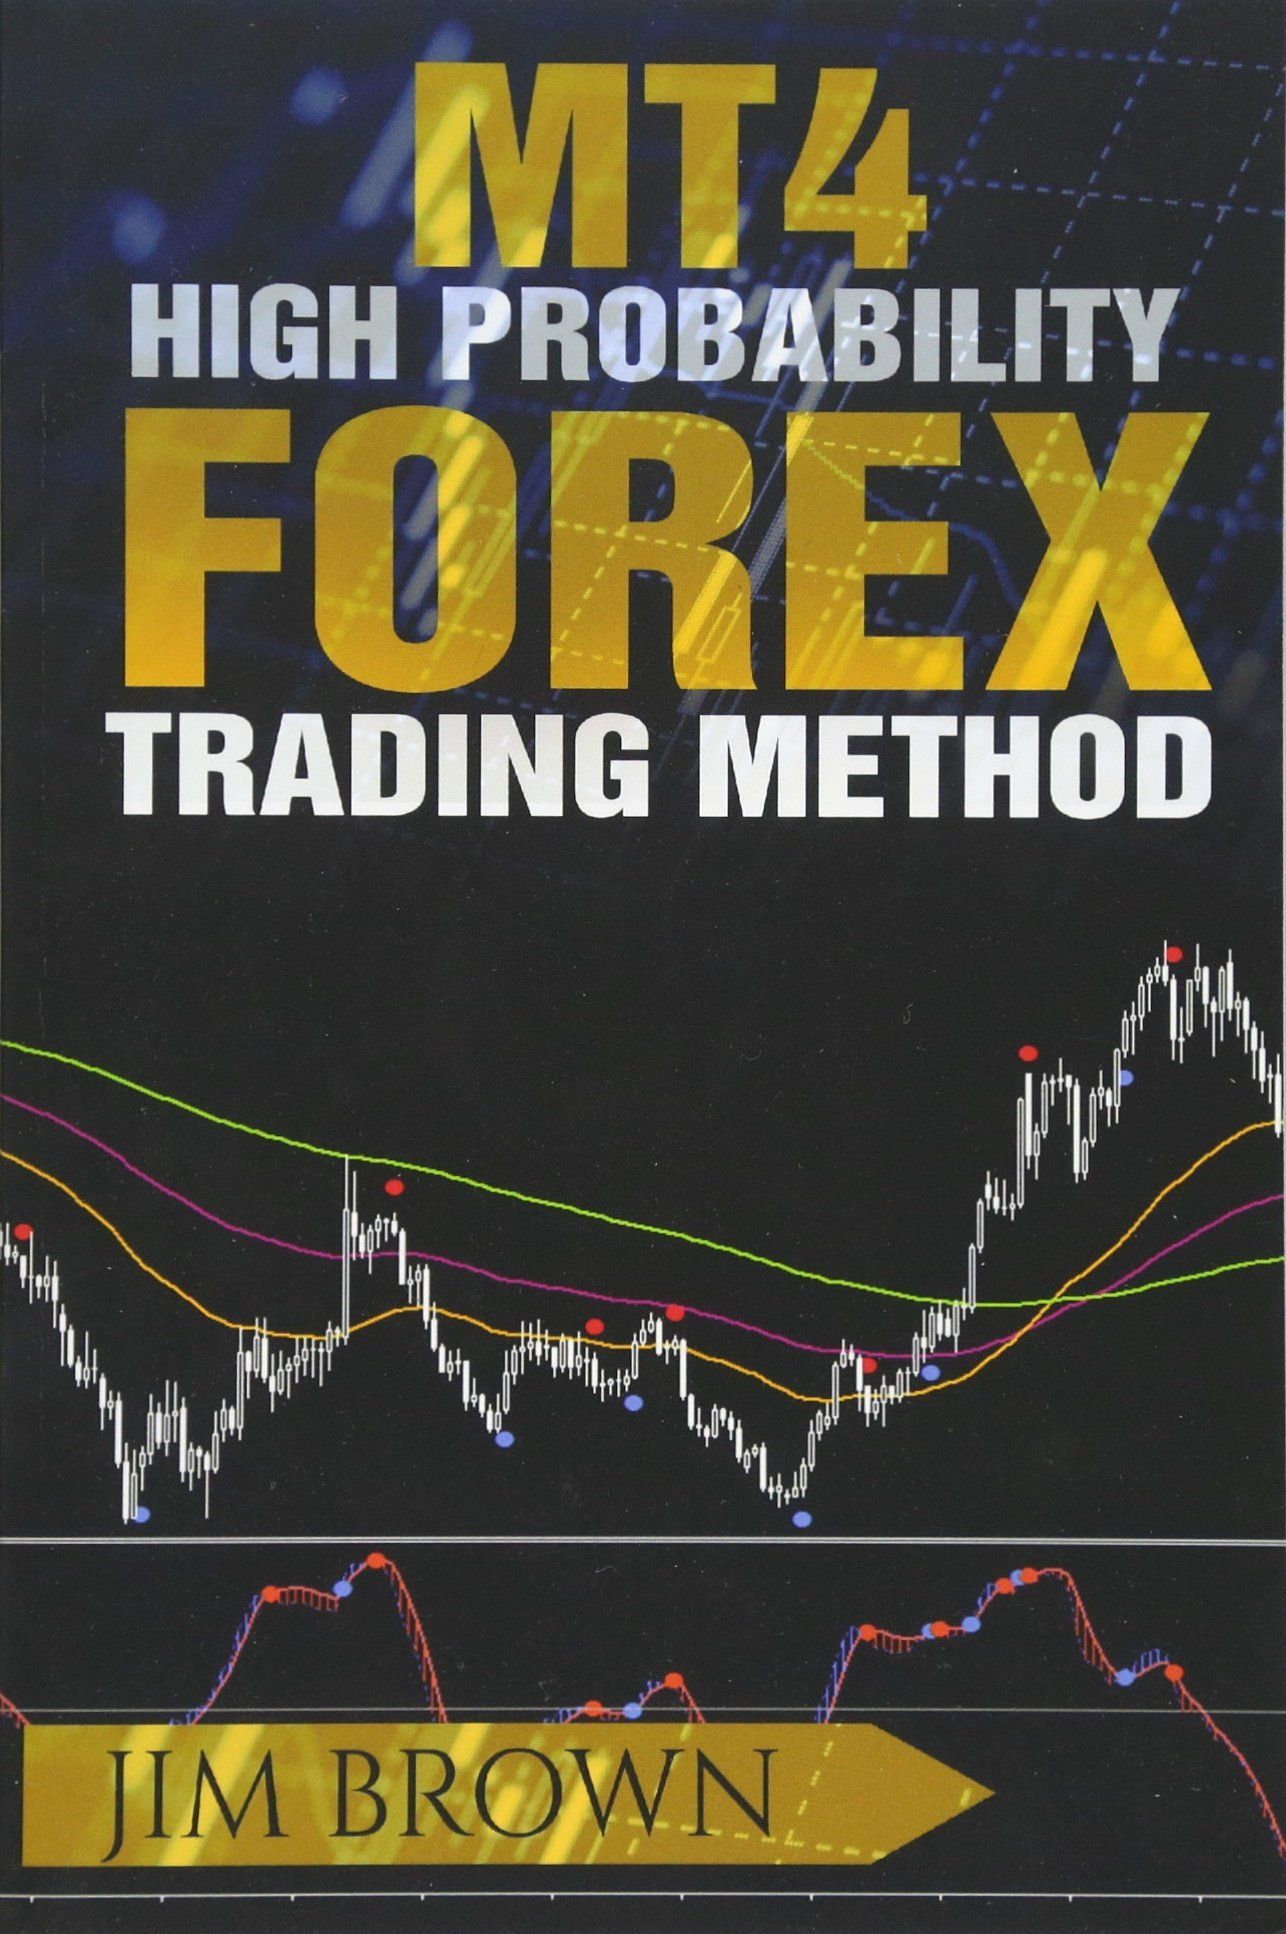 Free Download Mt4 High Probability Forex Trading Method By Jim